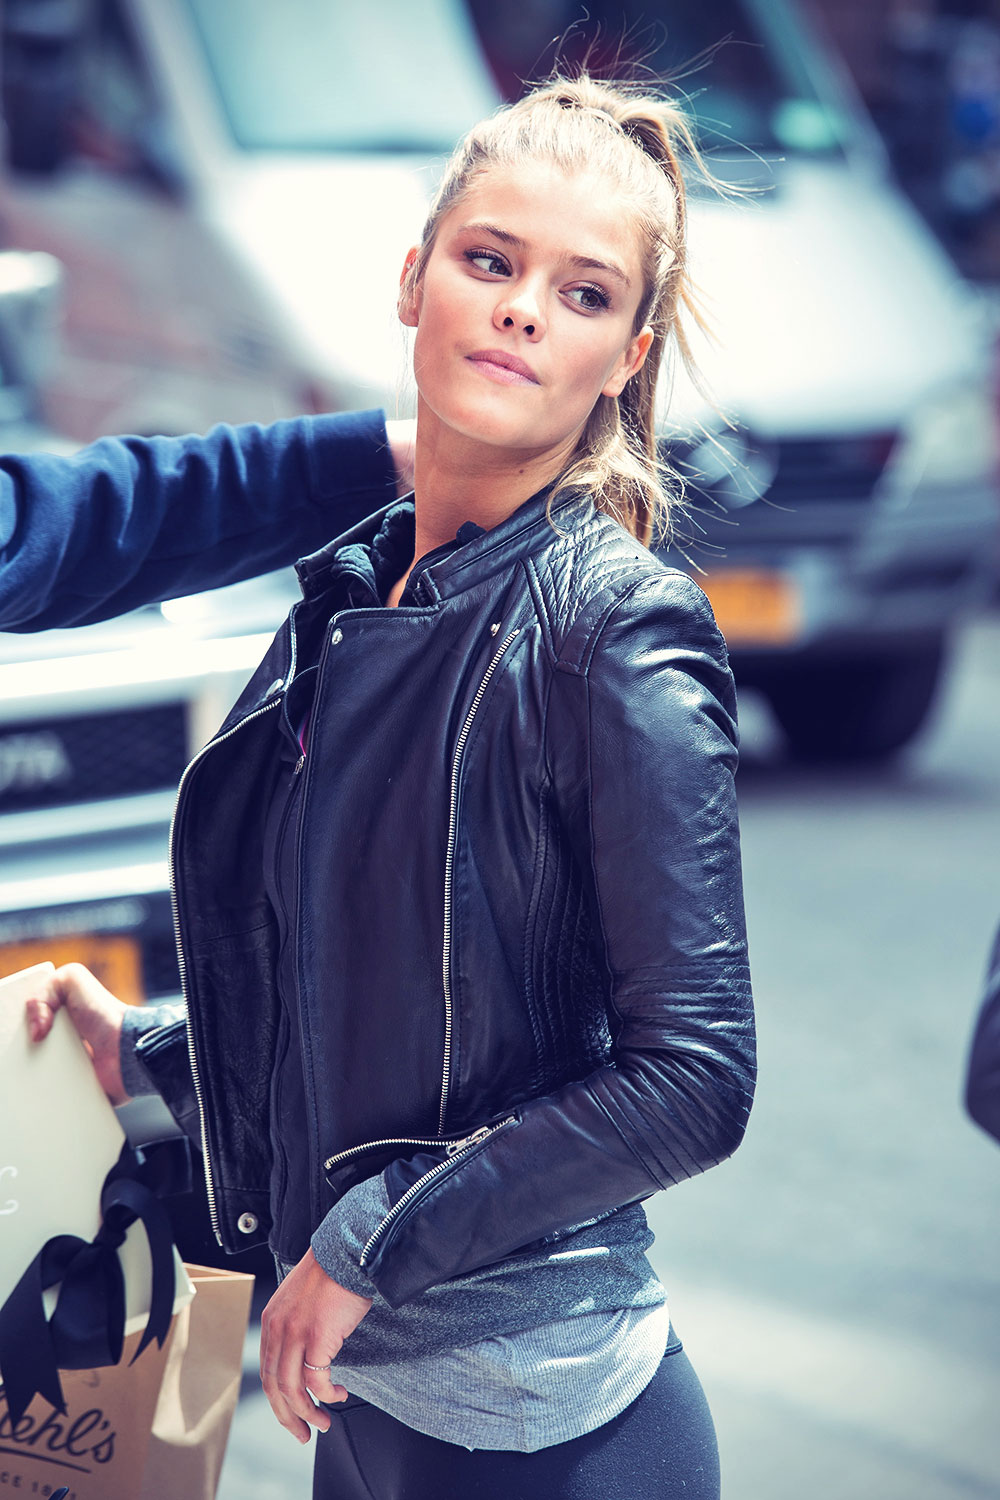 Nina Agdal on the streets of Manhattan